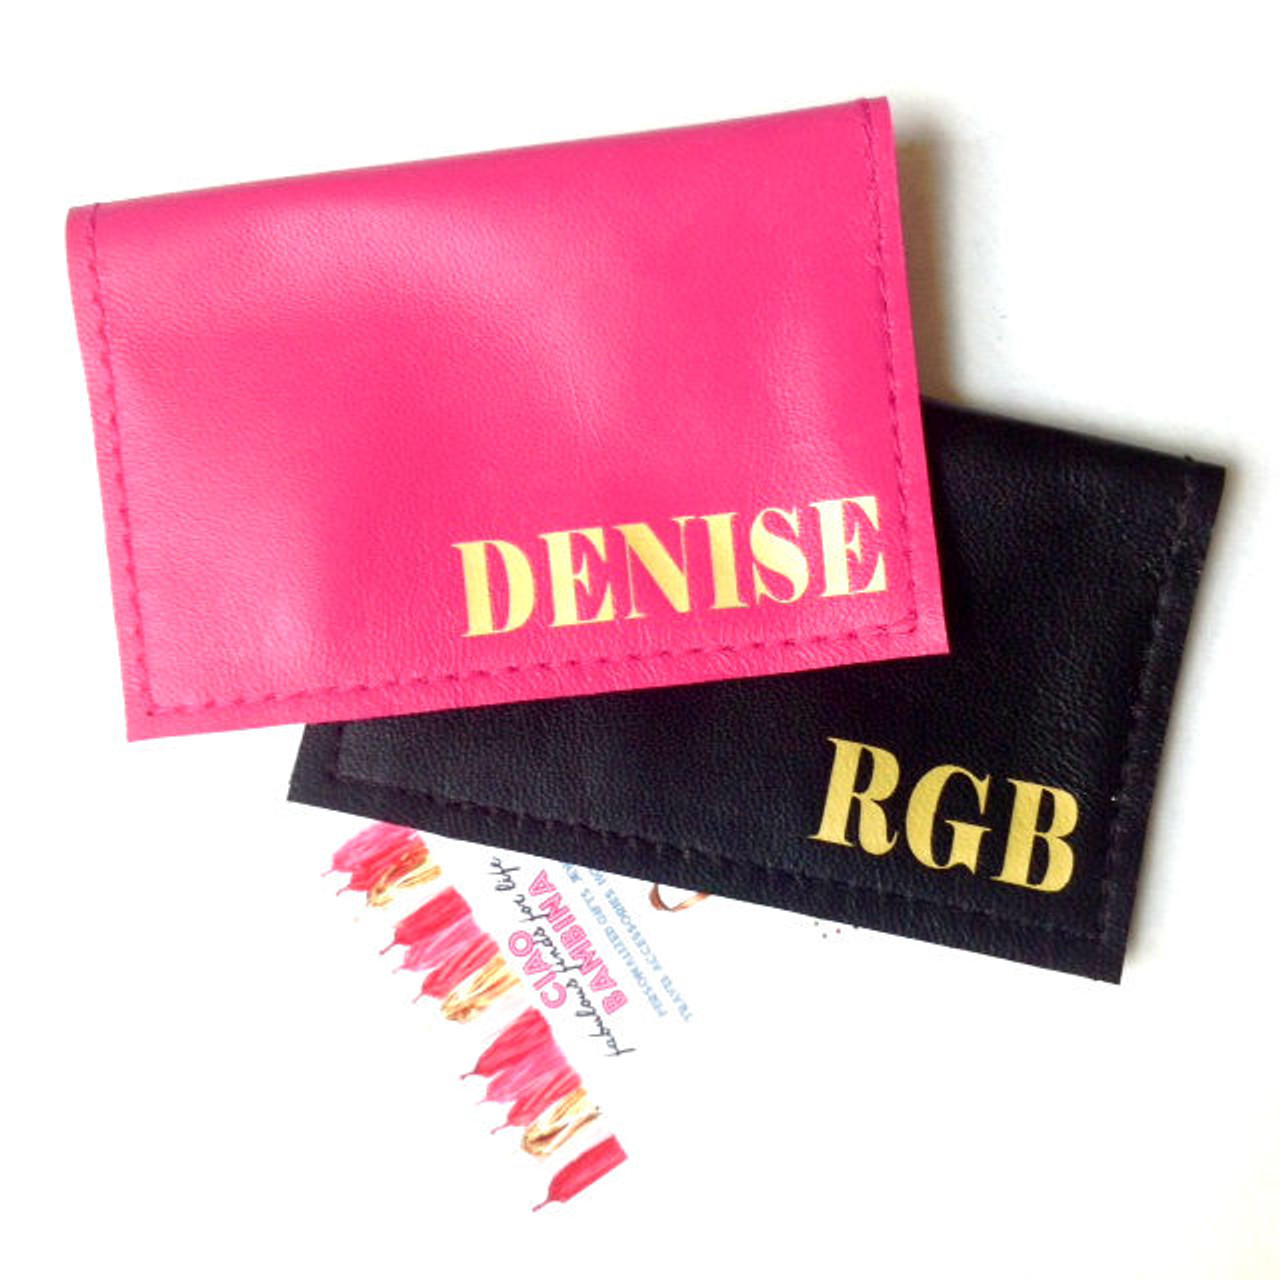 City personalized monogram leather business card holder city personalized monogram leather business credit card holder colourmoves